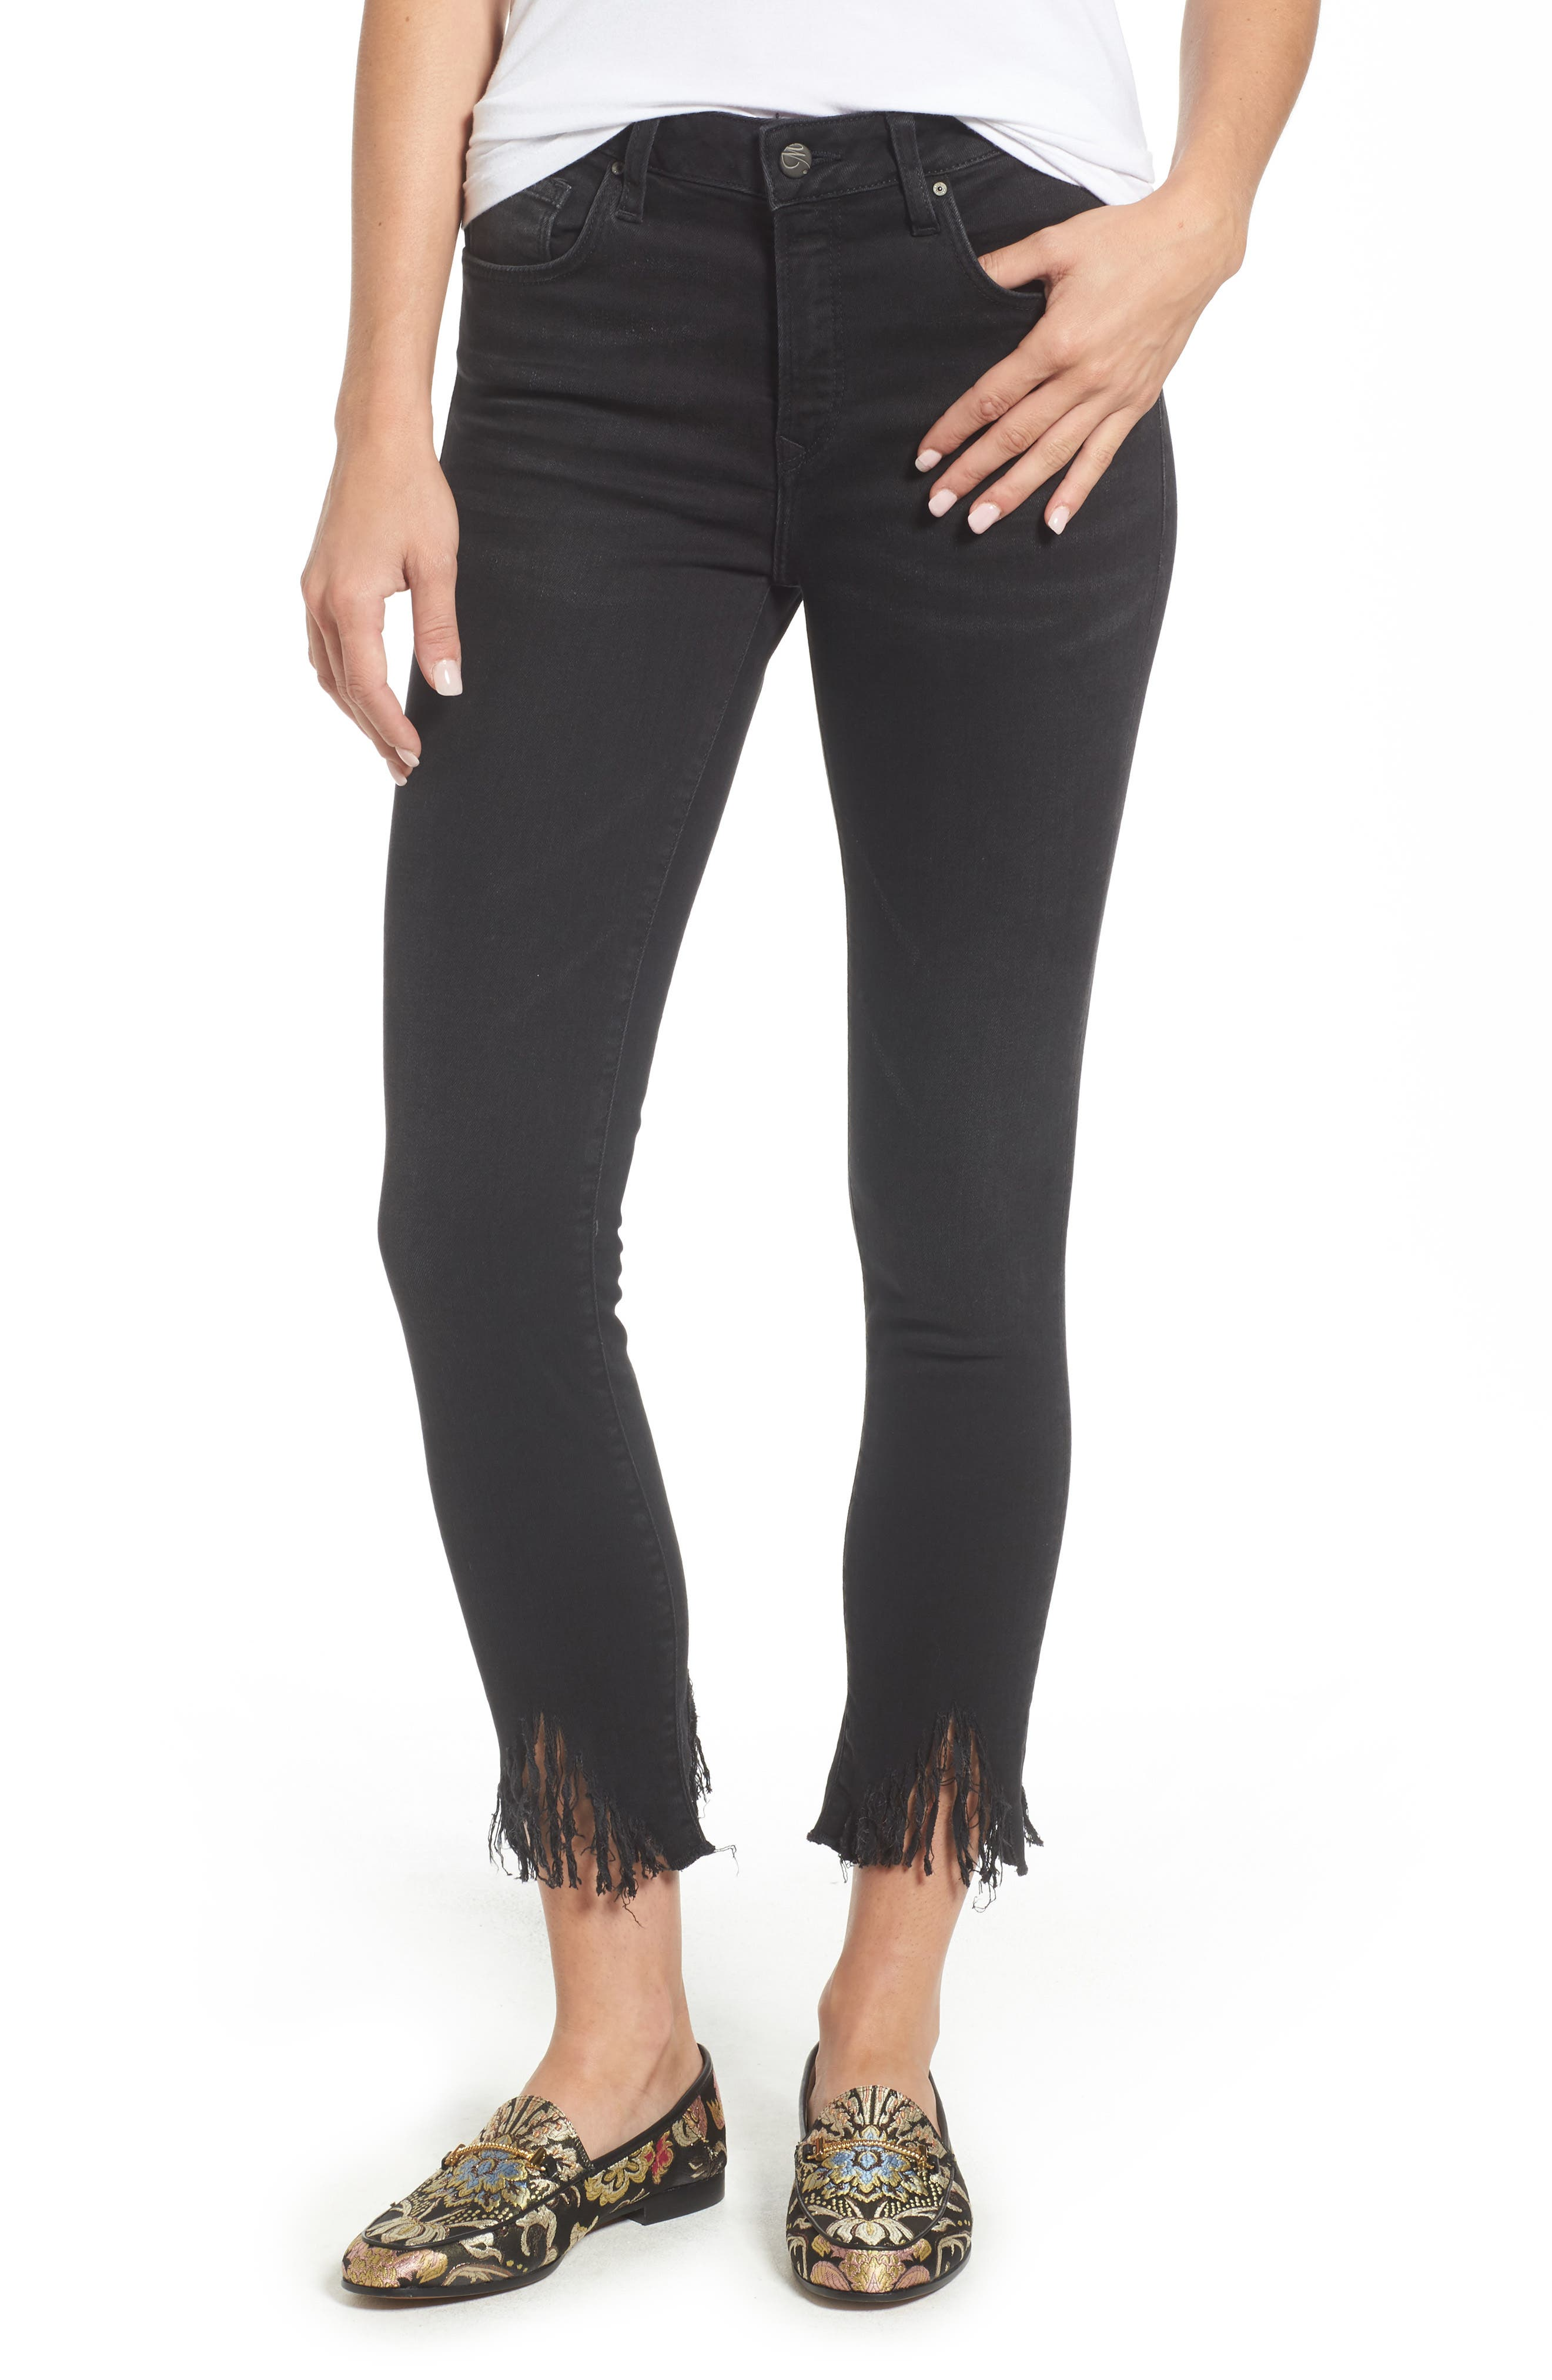 Tess Fringe Skinny Crop Jeans,                             Main thumbnail 1, color,                             SMOKE FRINGE